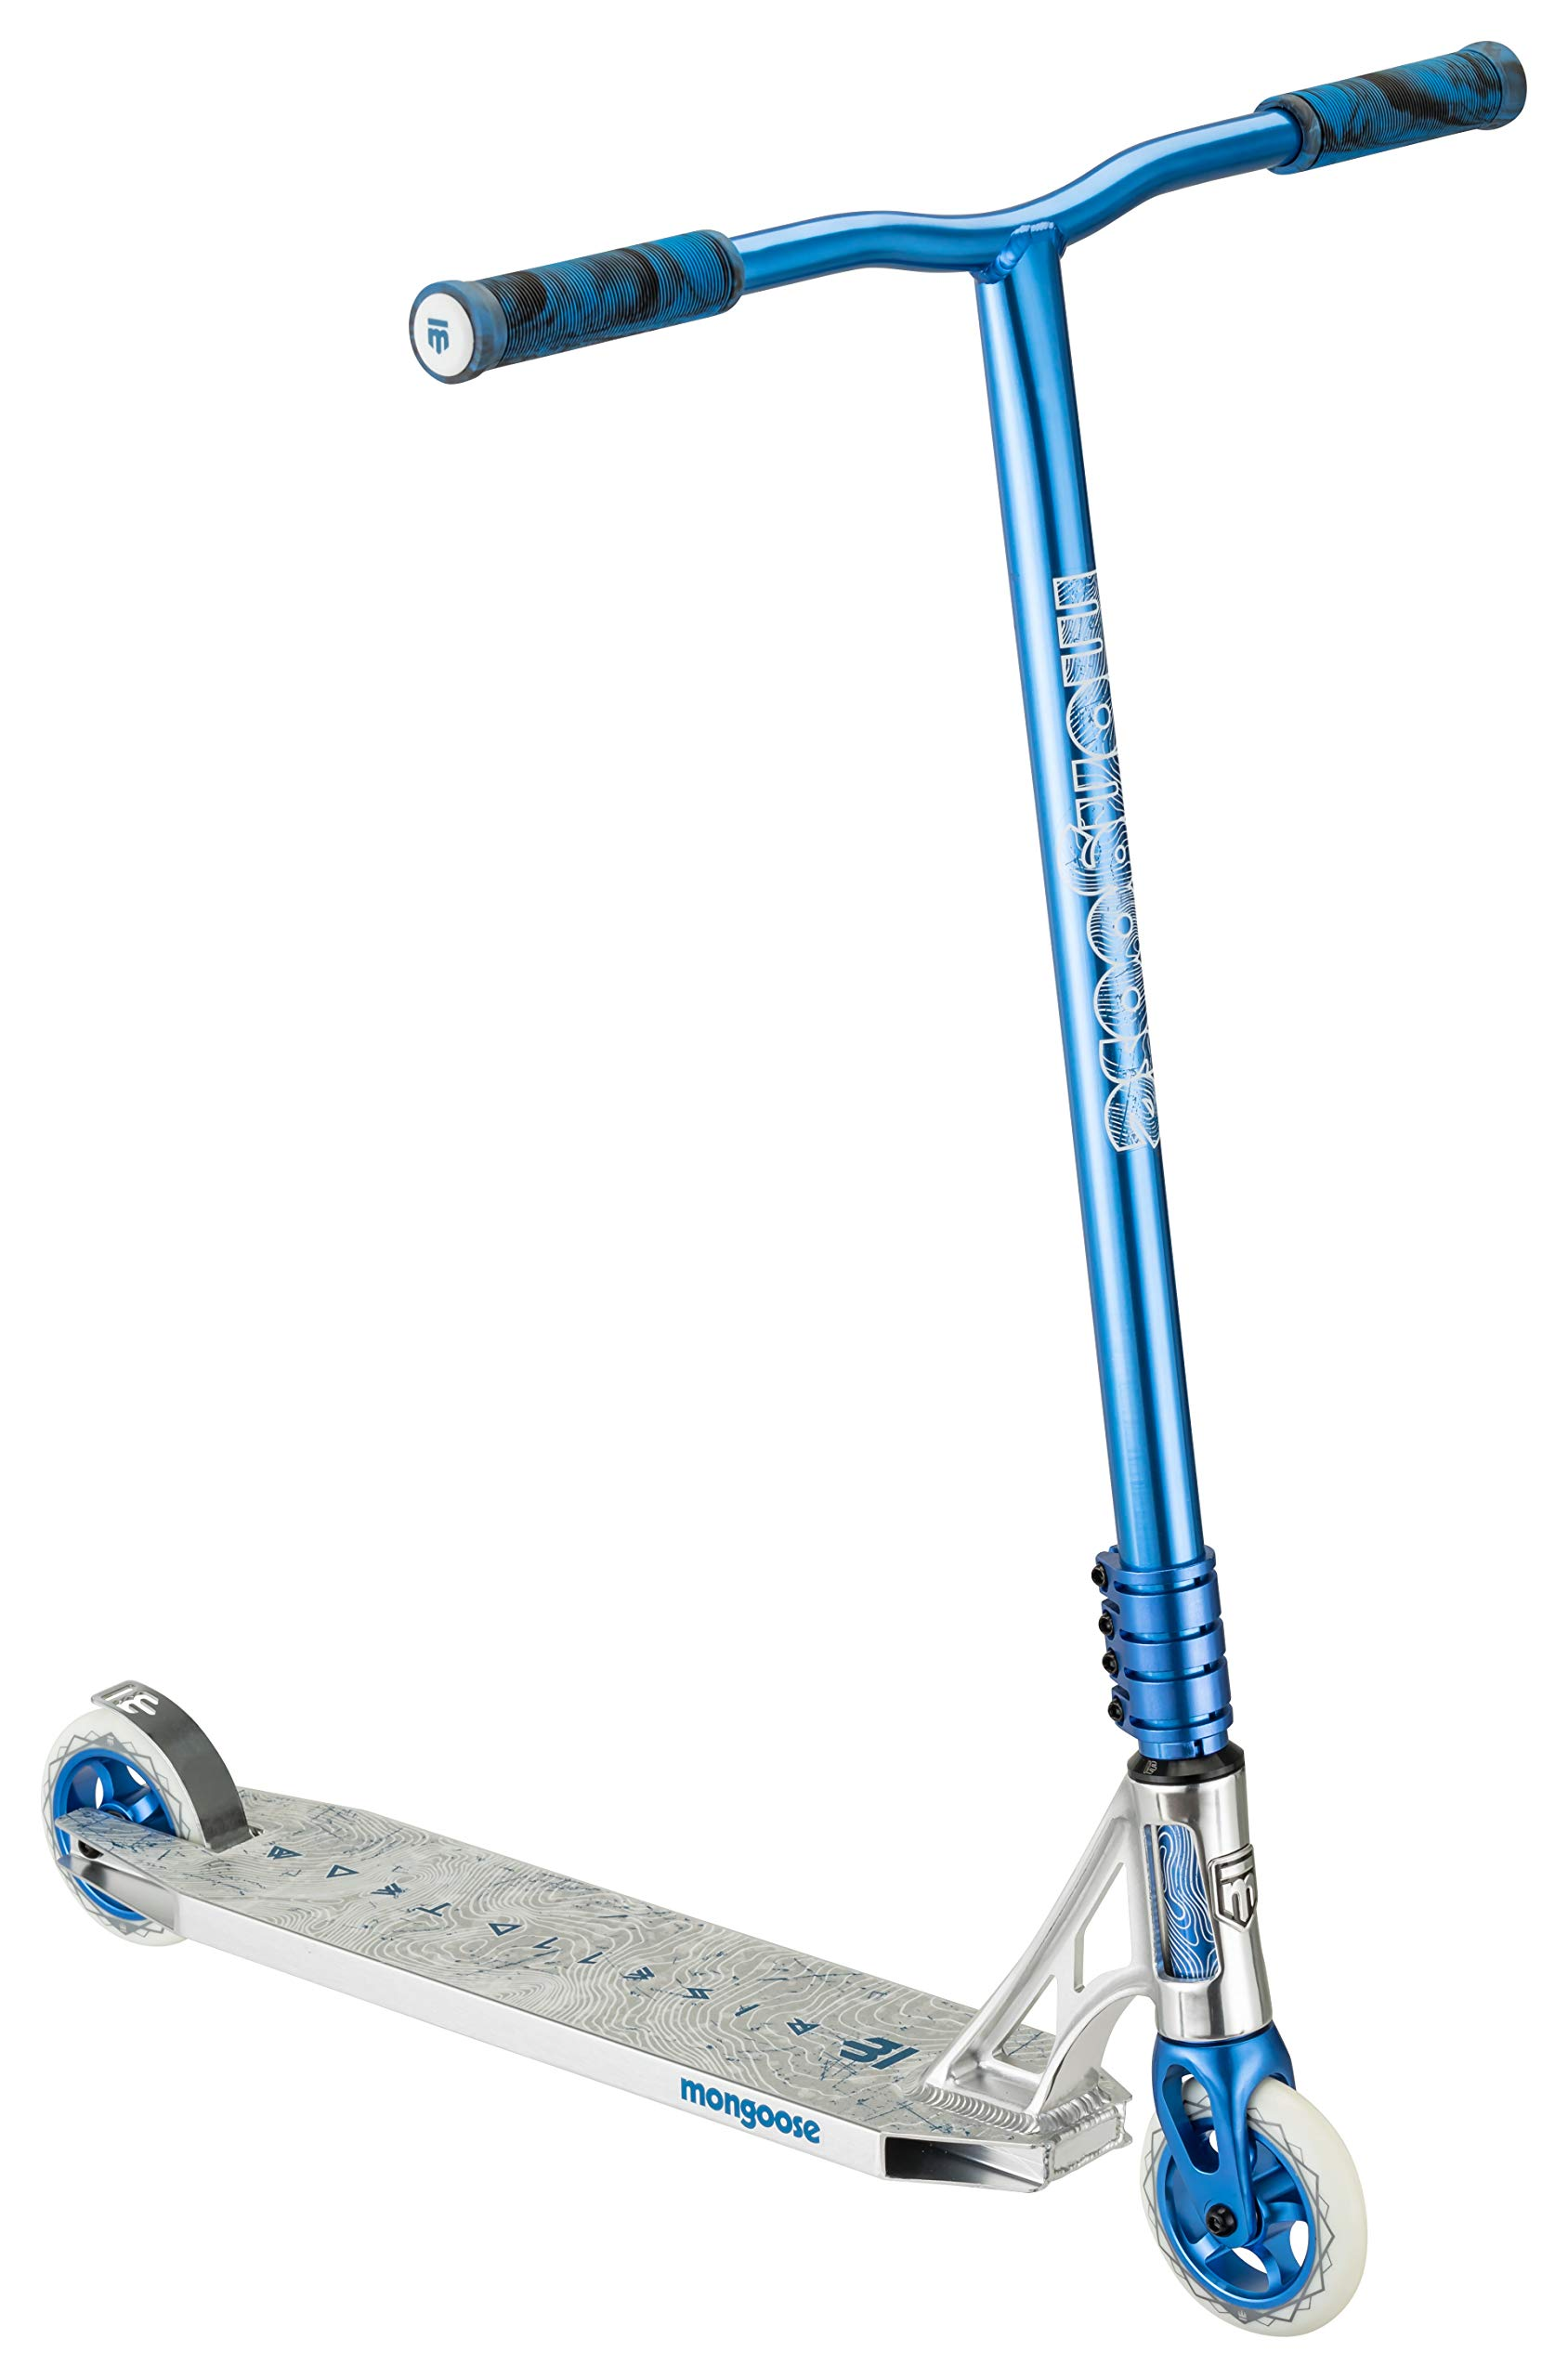 Mongoose Rise 110 Team Freestyle Stunt Kick Scooter, Featuring Lightweight Alloy Deck with Full-Coverage Max Grip and Bike-Style Handlebars, 110mm Alloy Wheels, Silver/Blue